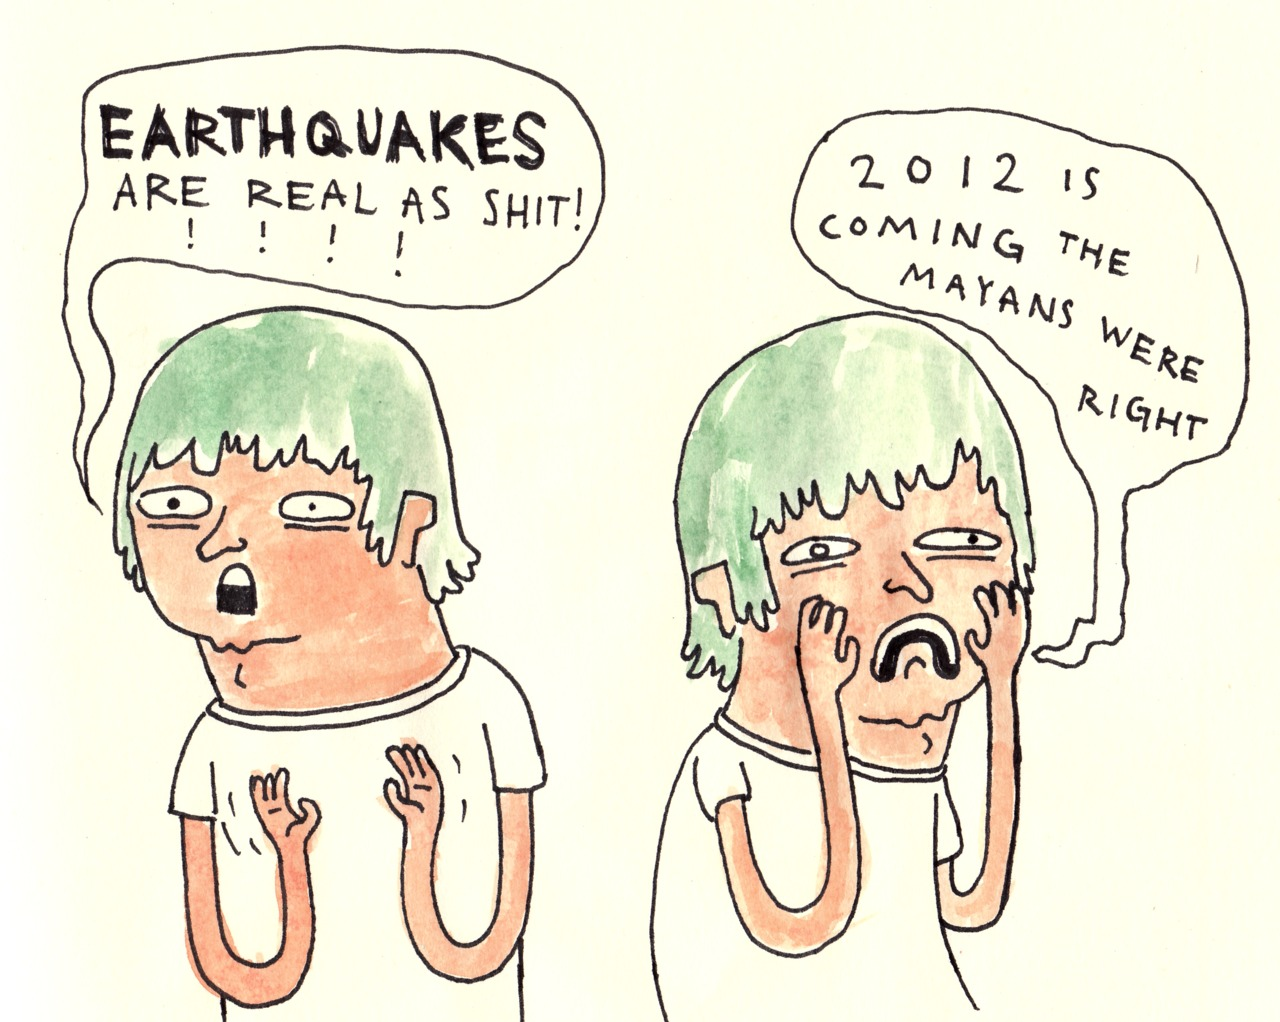 EARTHQUAKES ARE REAL AS SHIT